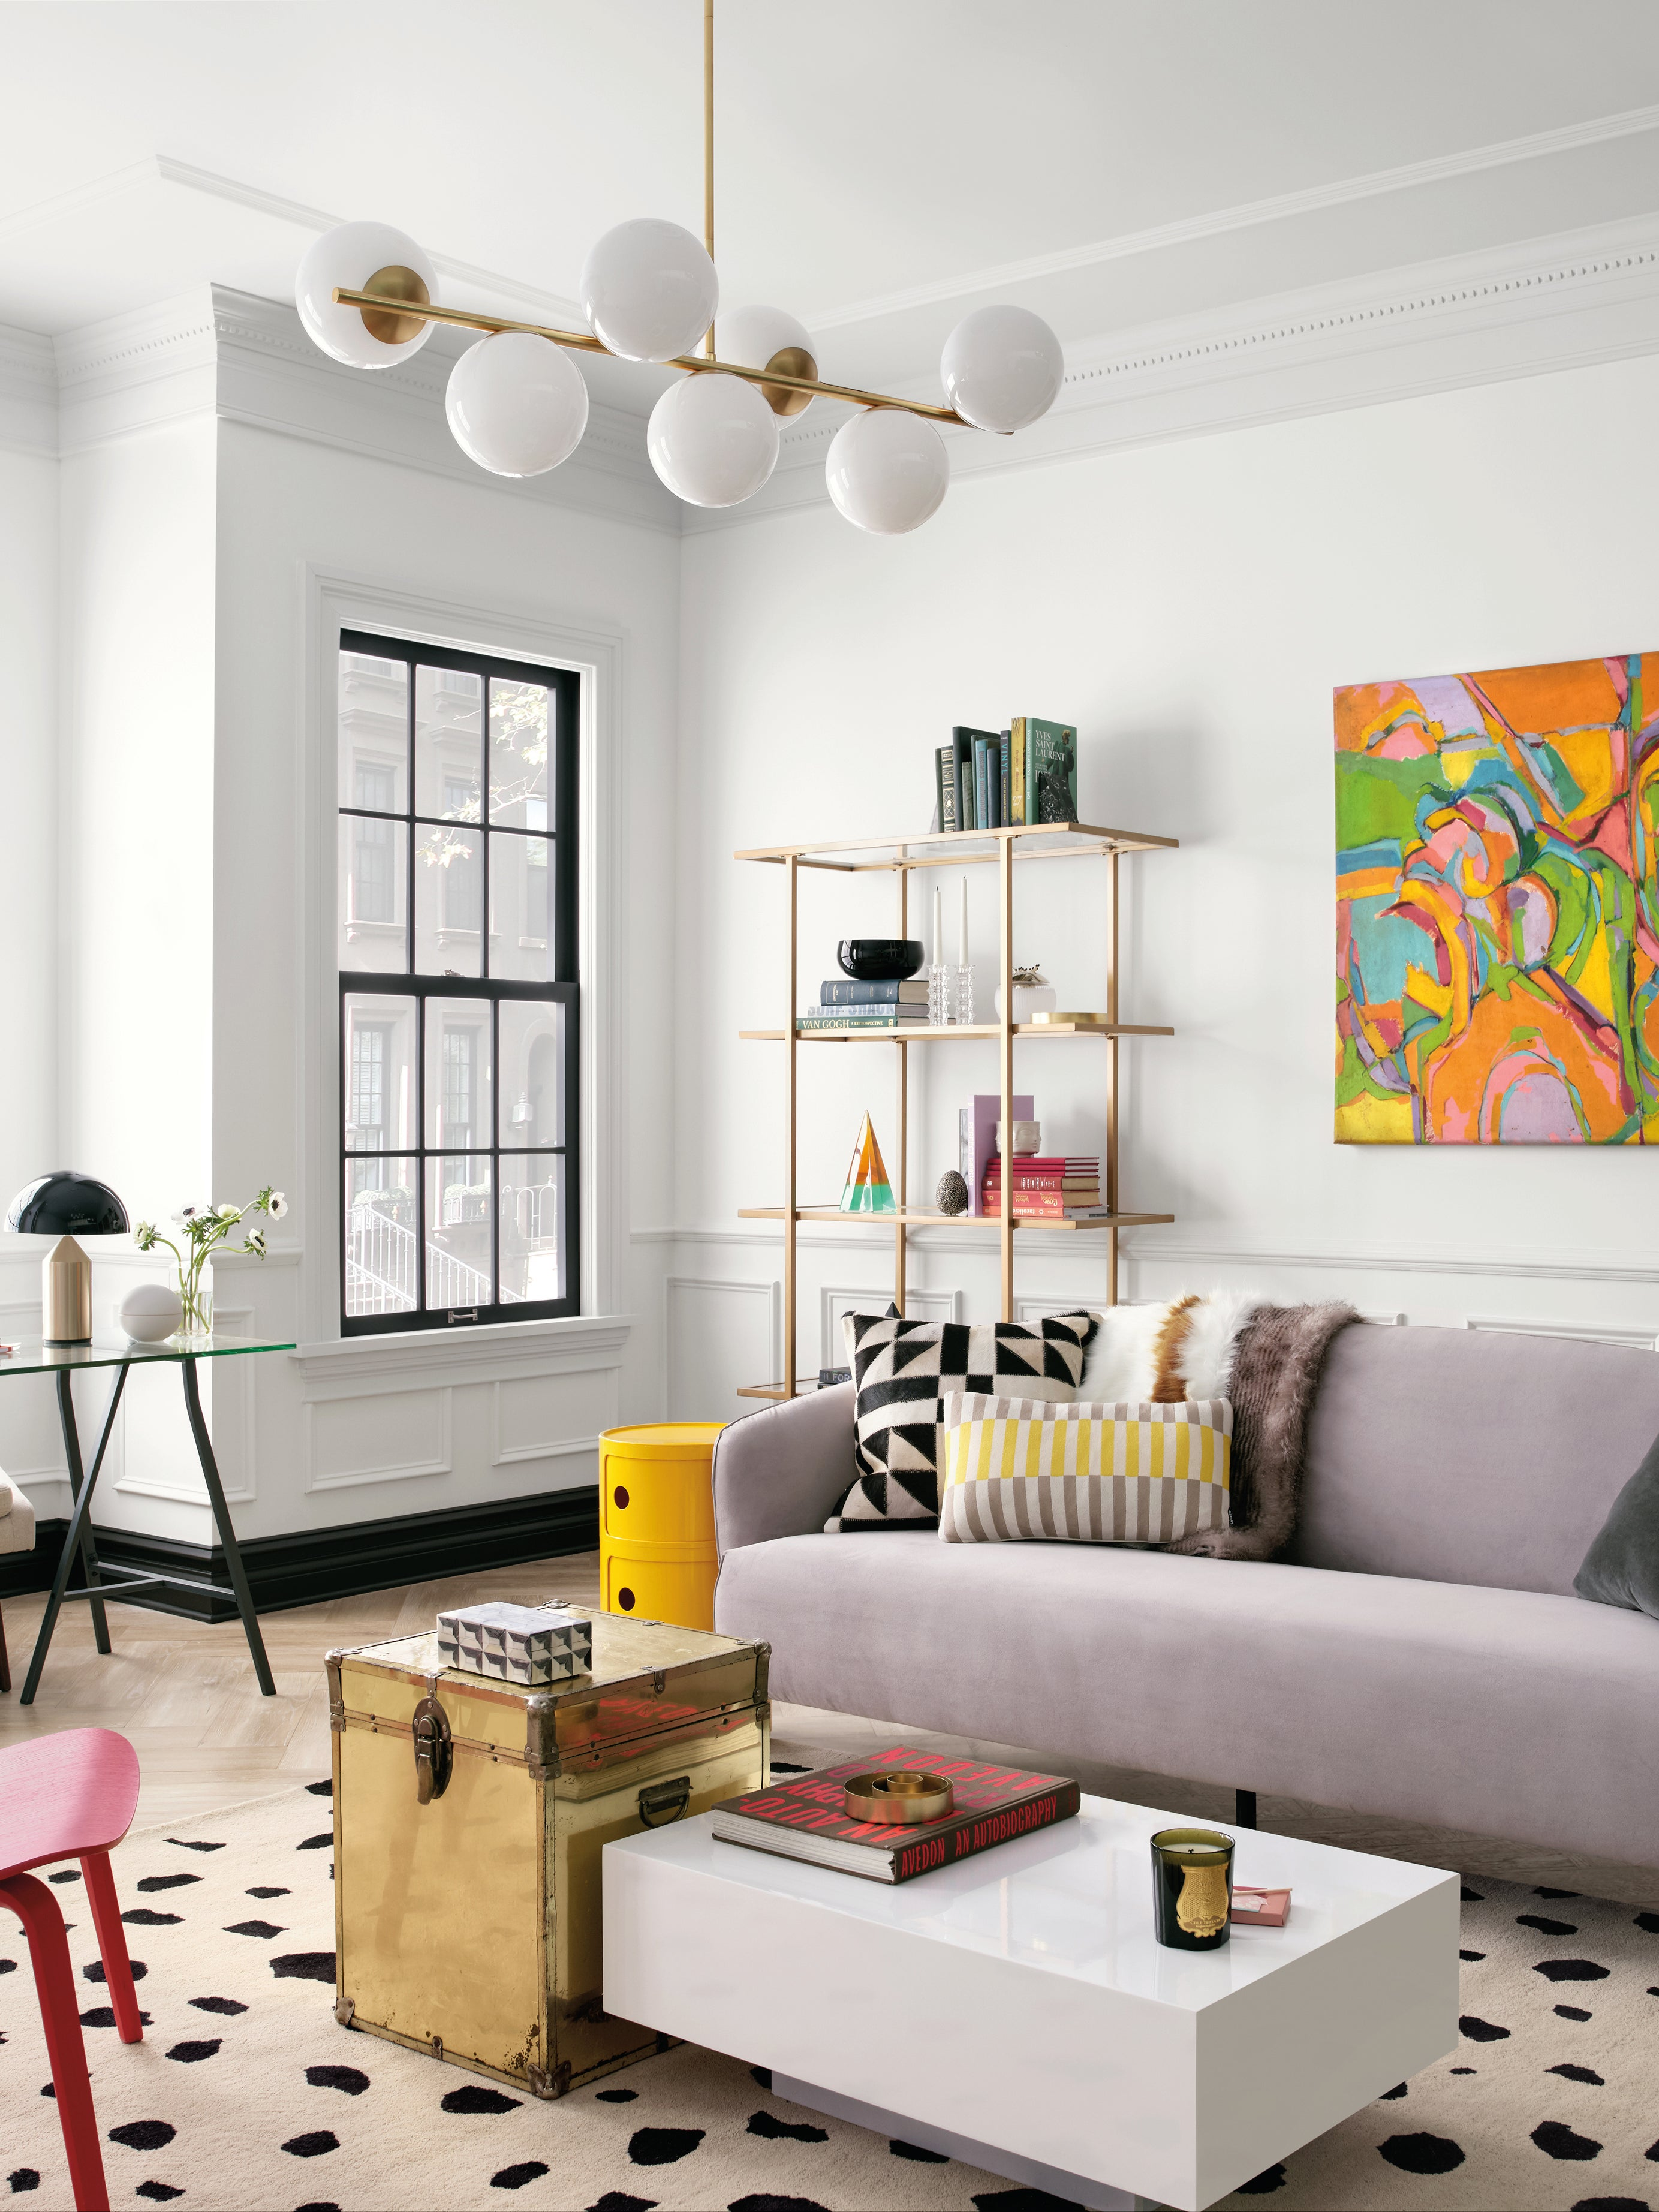 Sherwin-Williams's New Color Palettes Put an End to Paint-Picking Anxiety